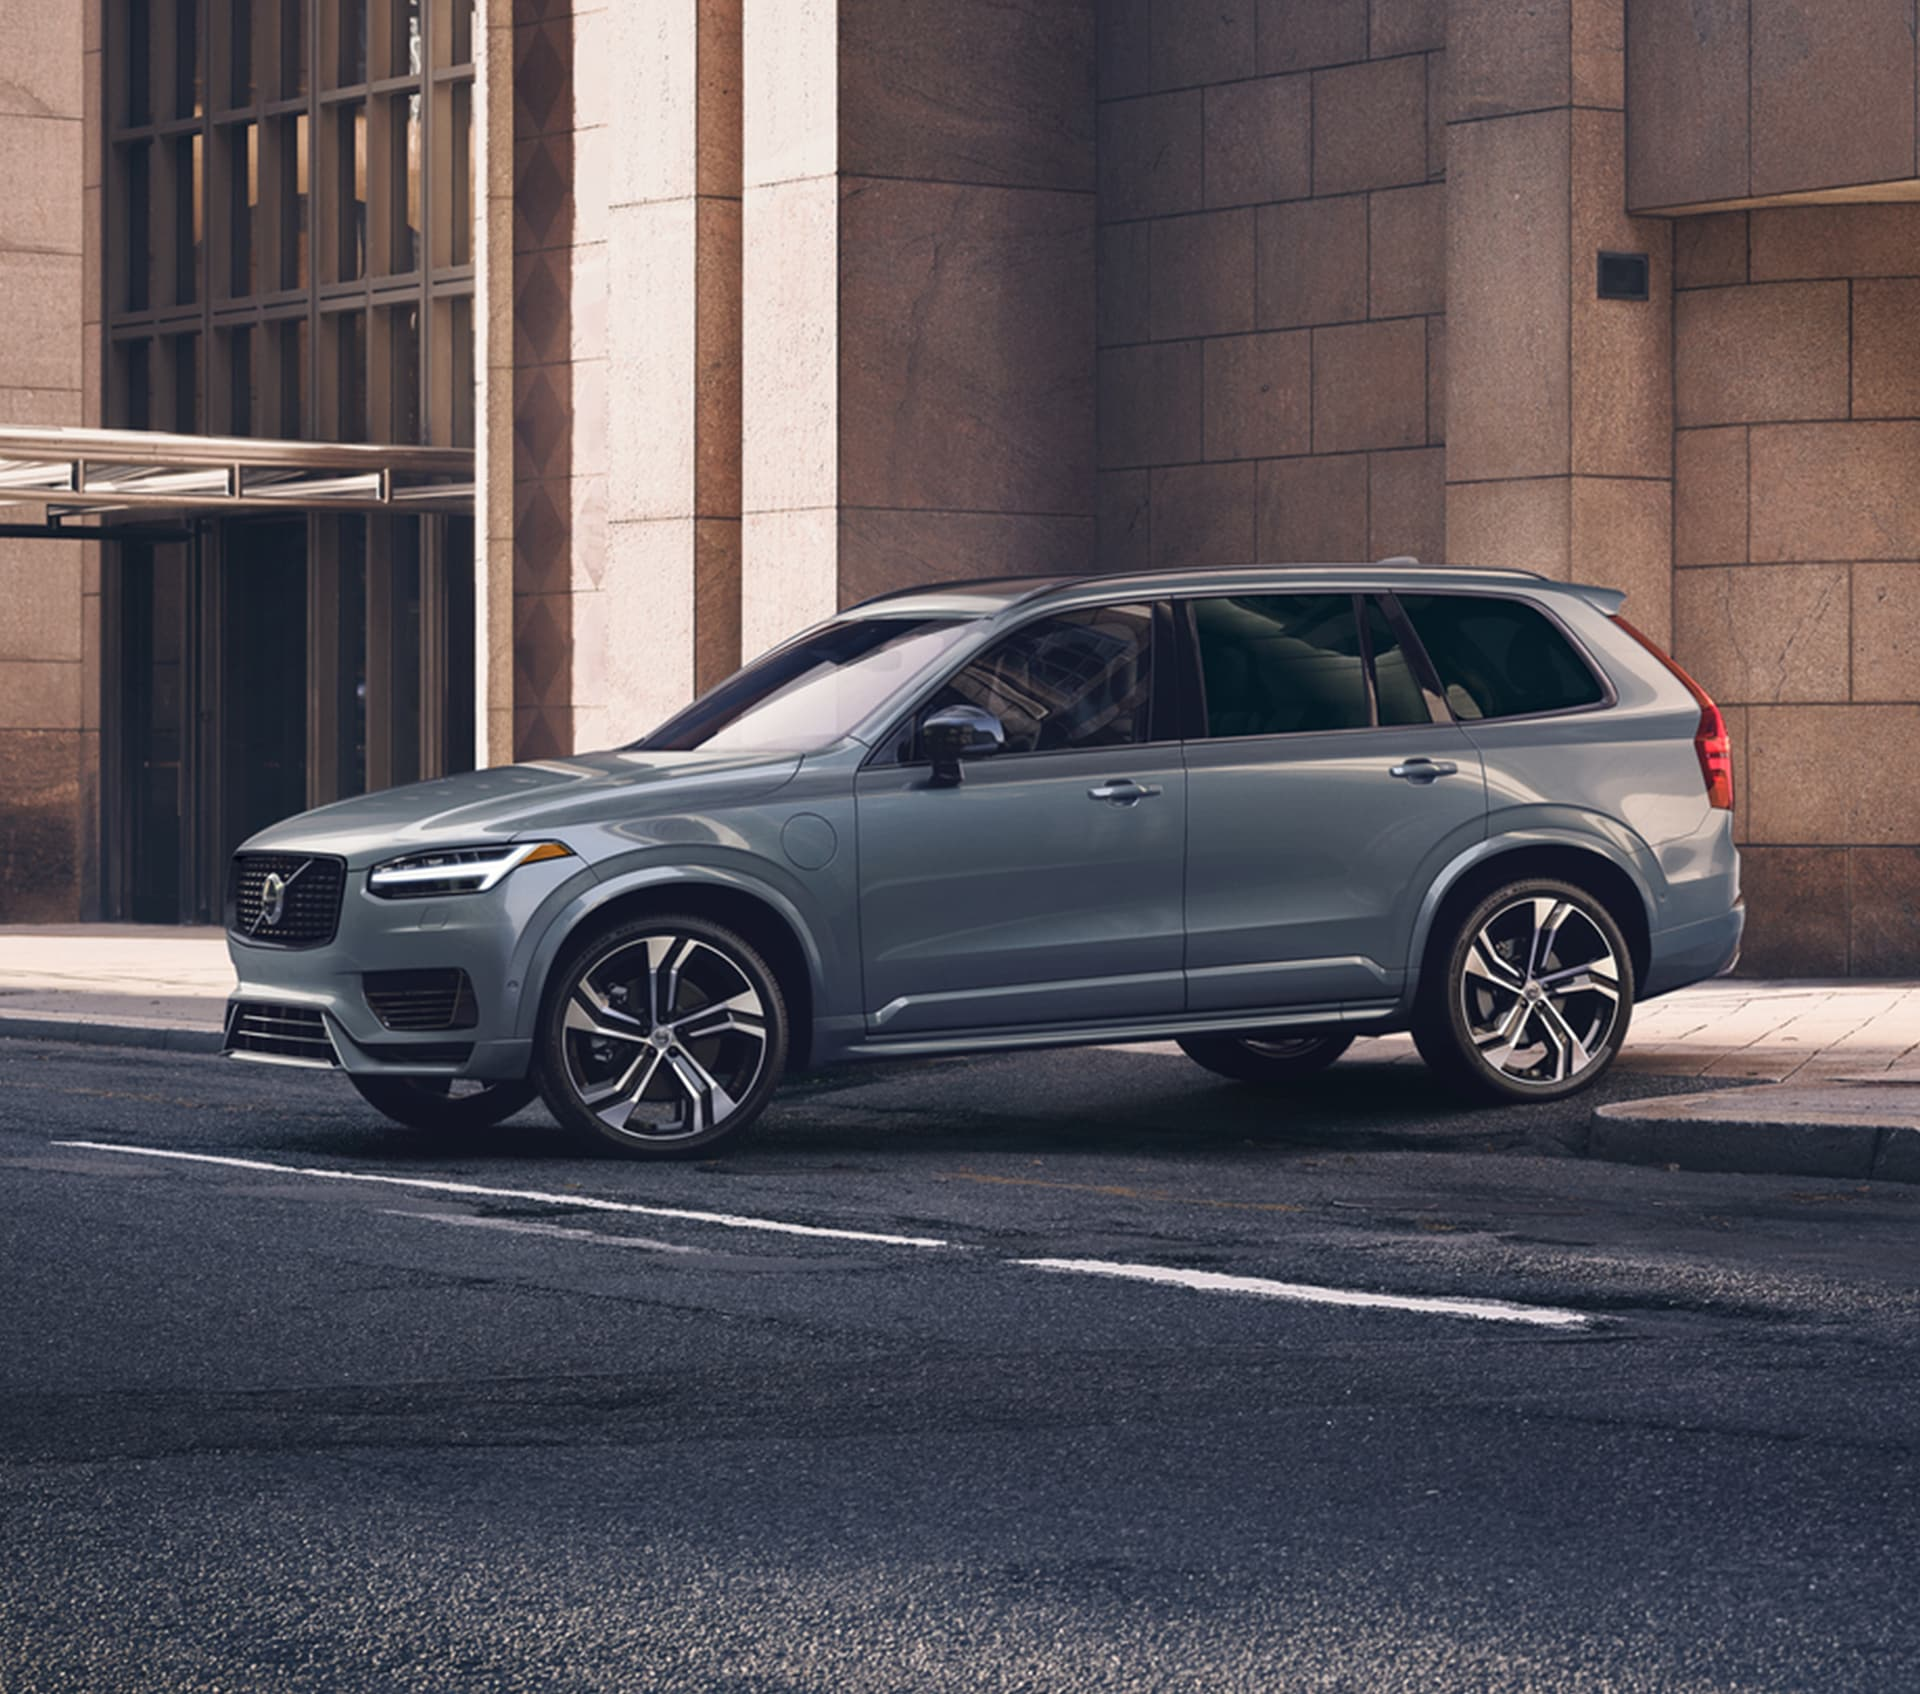 grey Volvo XC90 luxury SUV side view